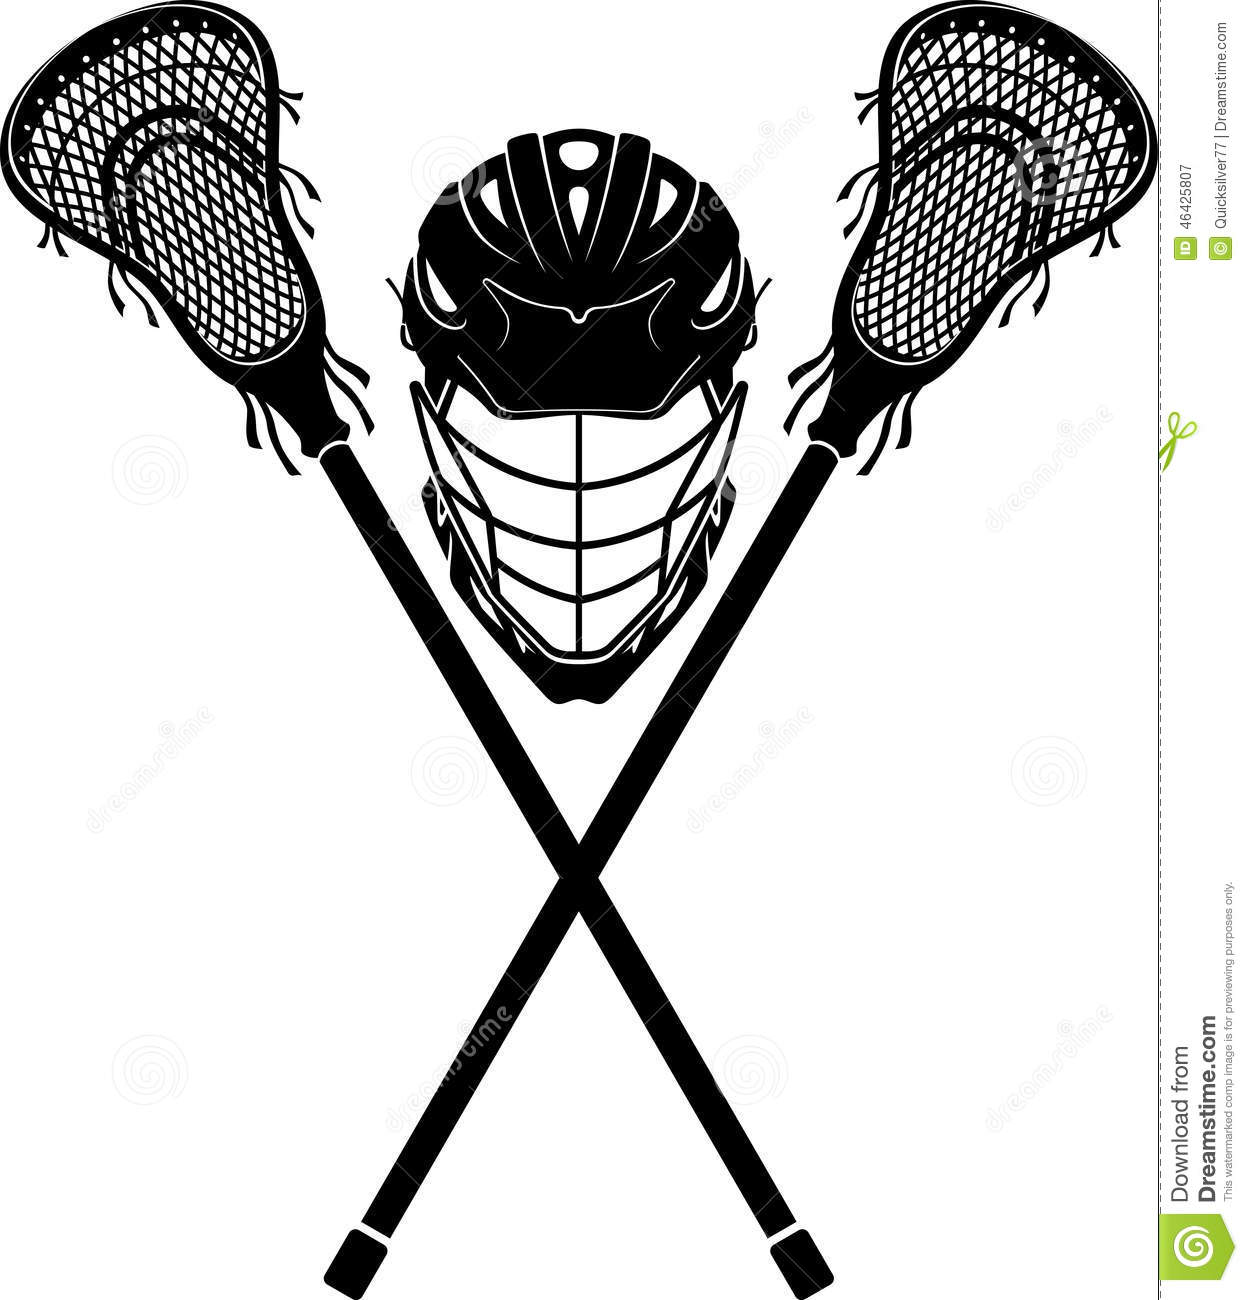 Lacrosse clipart black and white. Free download best